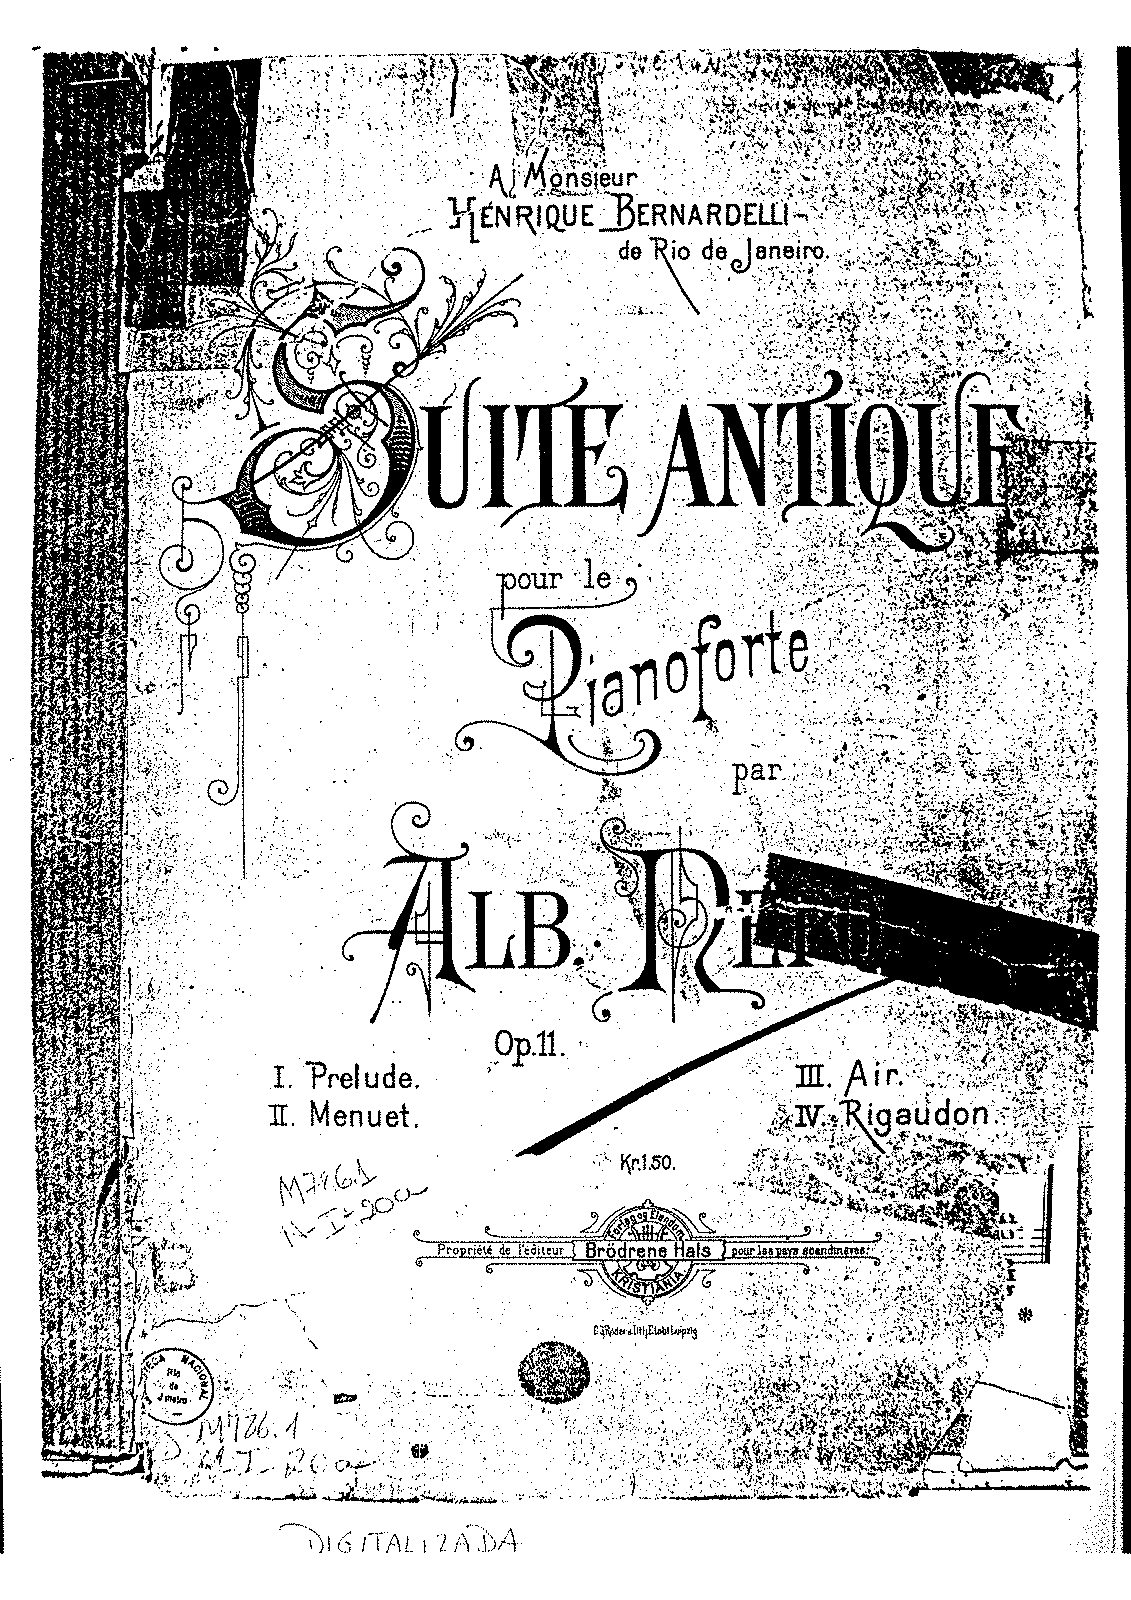 PMLP26068-Alb. Nepo. - Suite Antique, Op. 11.pdf